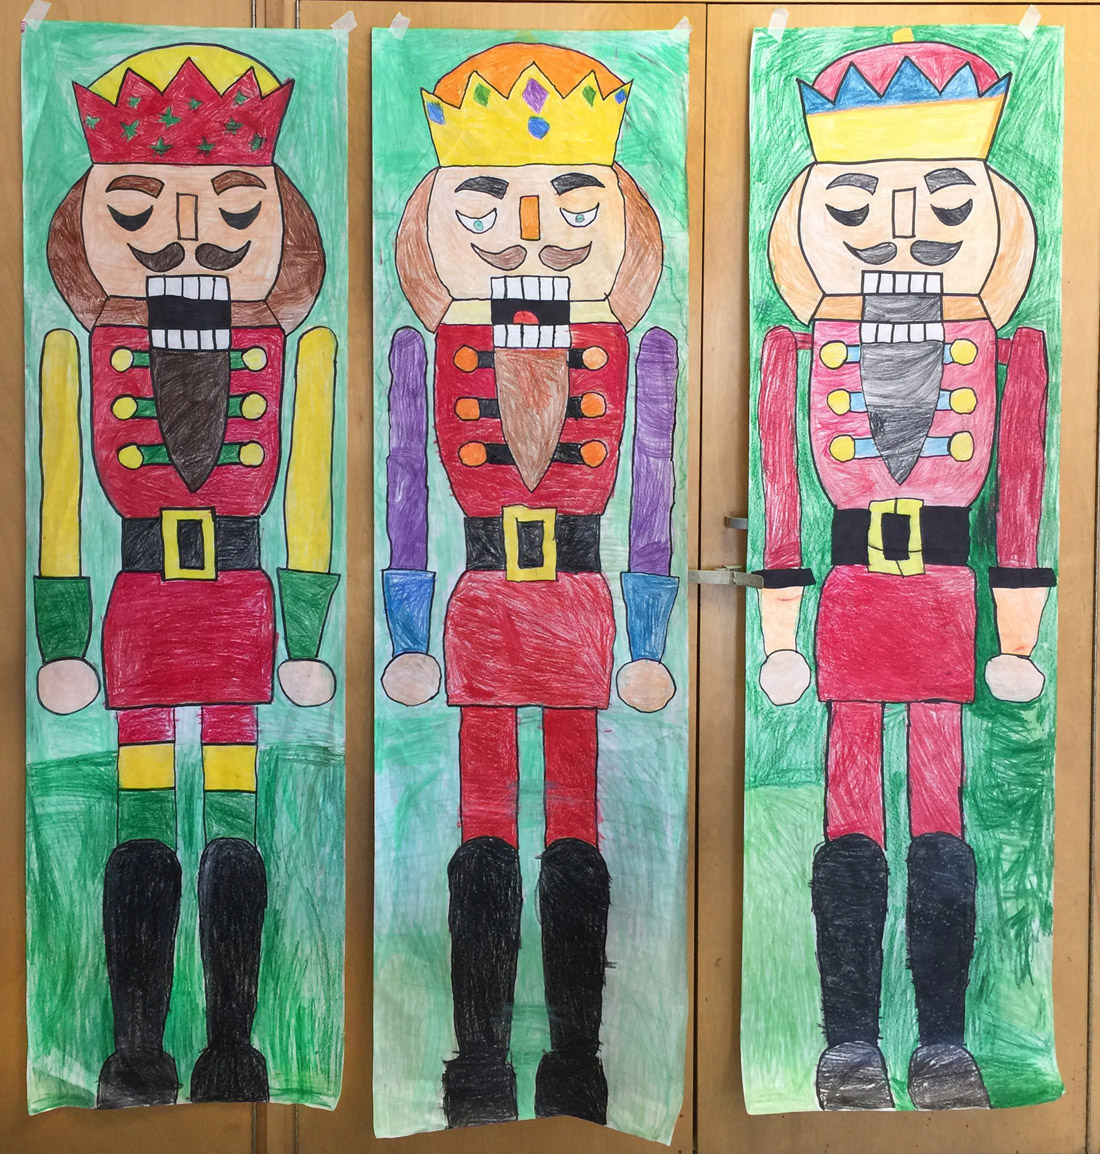 mother's day photo collage idea - Giant Nutcracker Drawings Art Projects for Kids